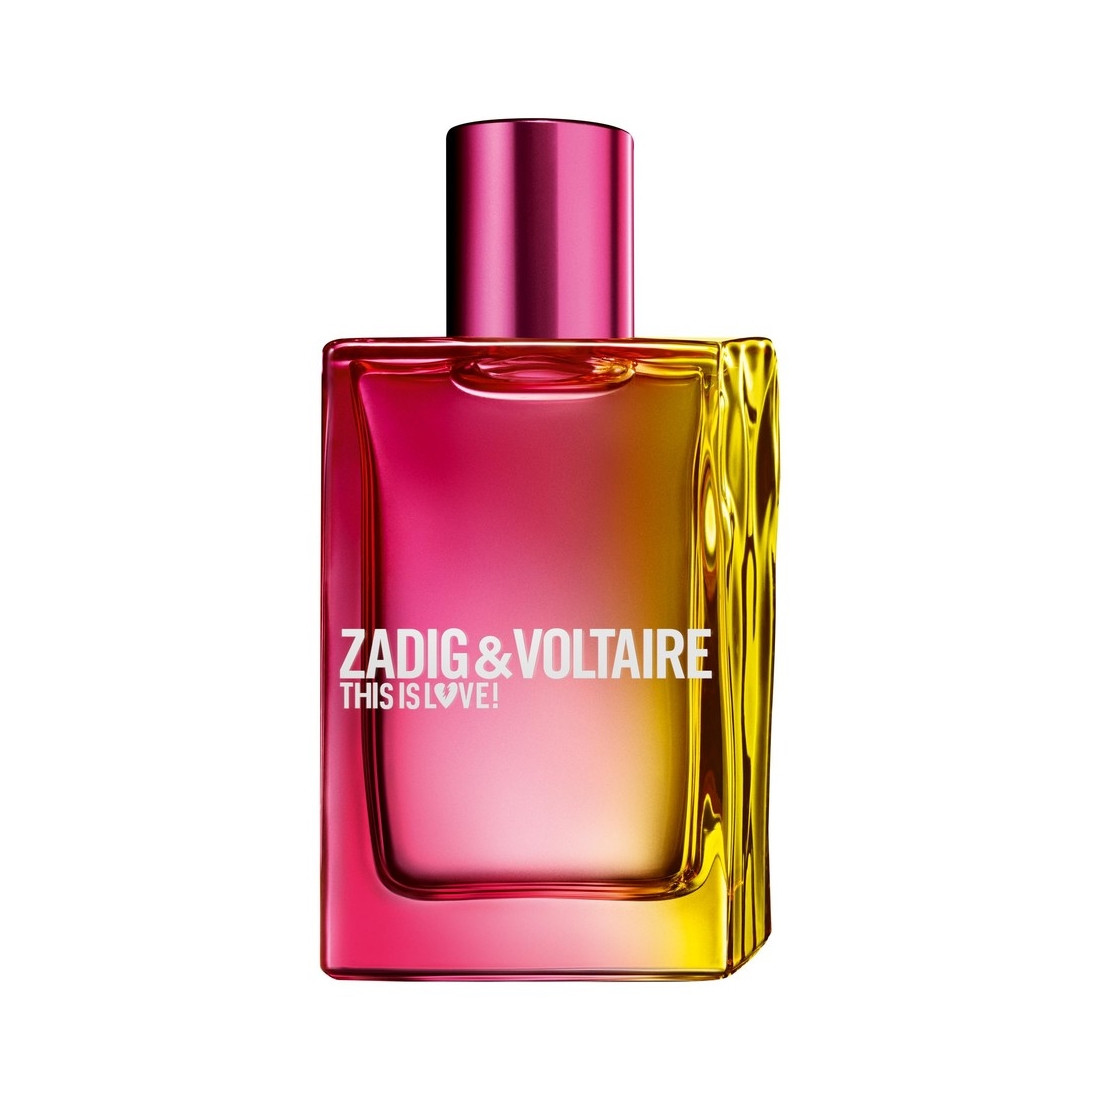 ZADIG & VOLTAIRE THIS IS LOVE 100ML EDT WOMAN